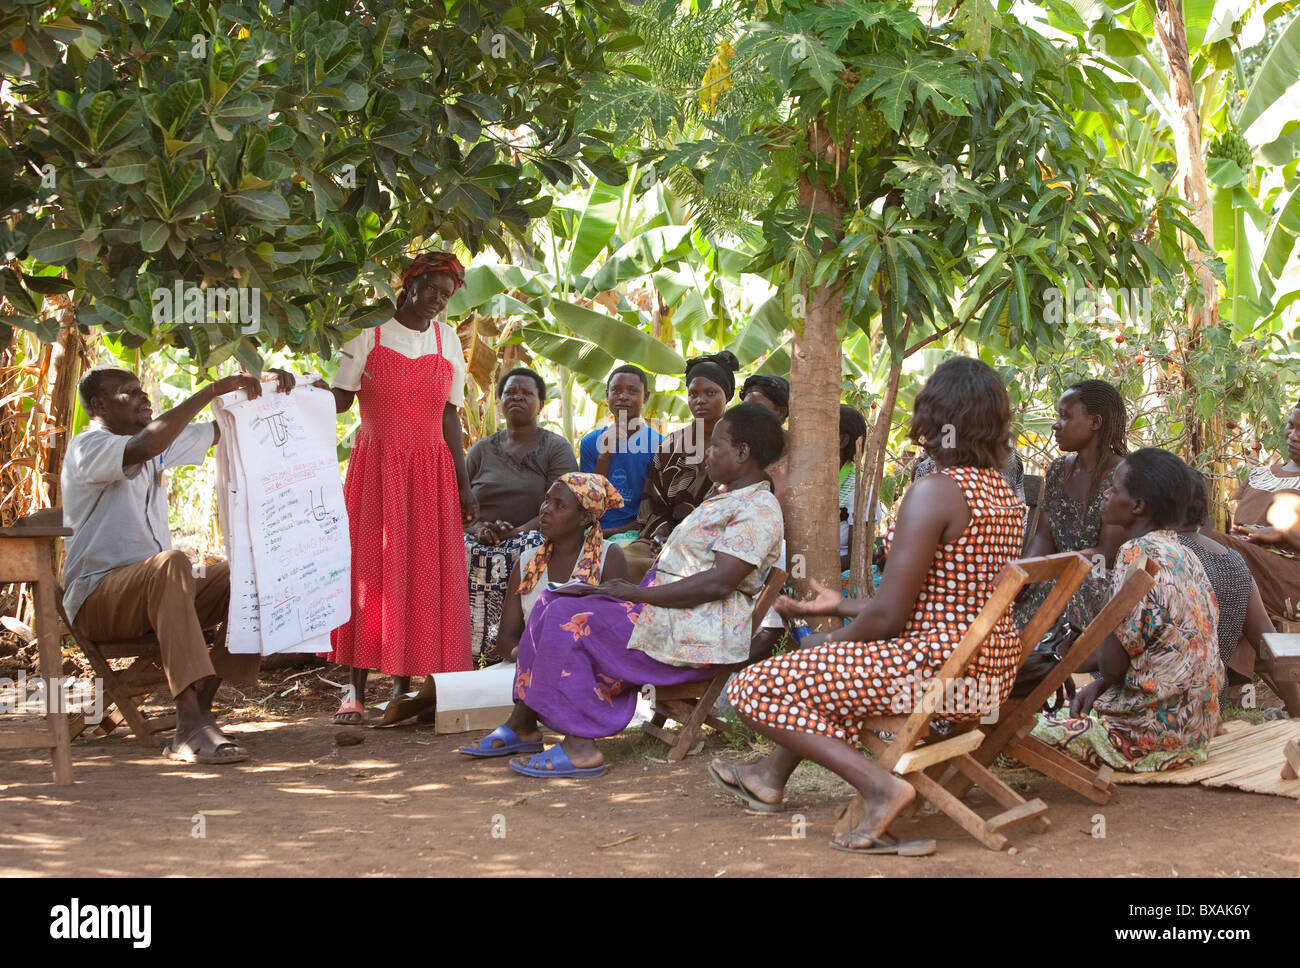 Villagers attend a community meeting in Buwanyanga Village - Sironko, Eastern Uganda, East Africa. - Stock Image